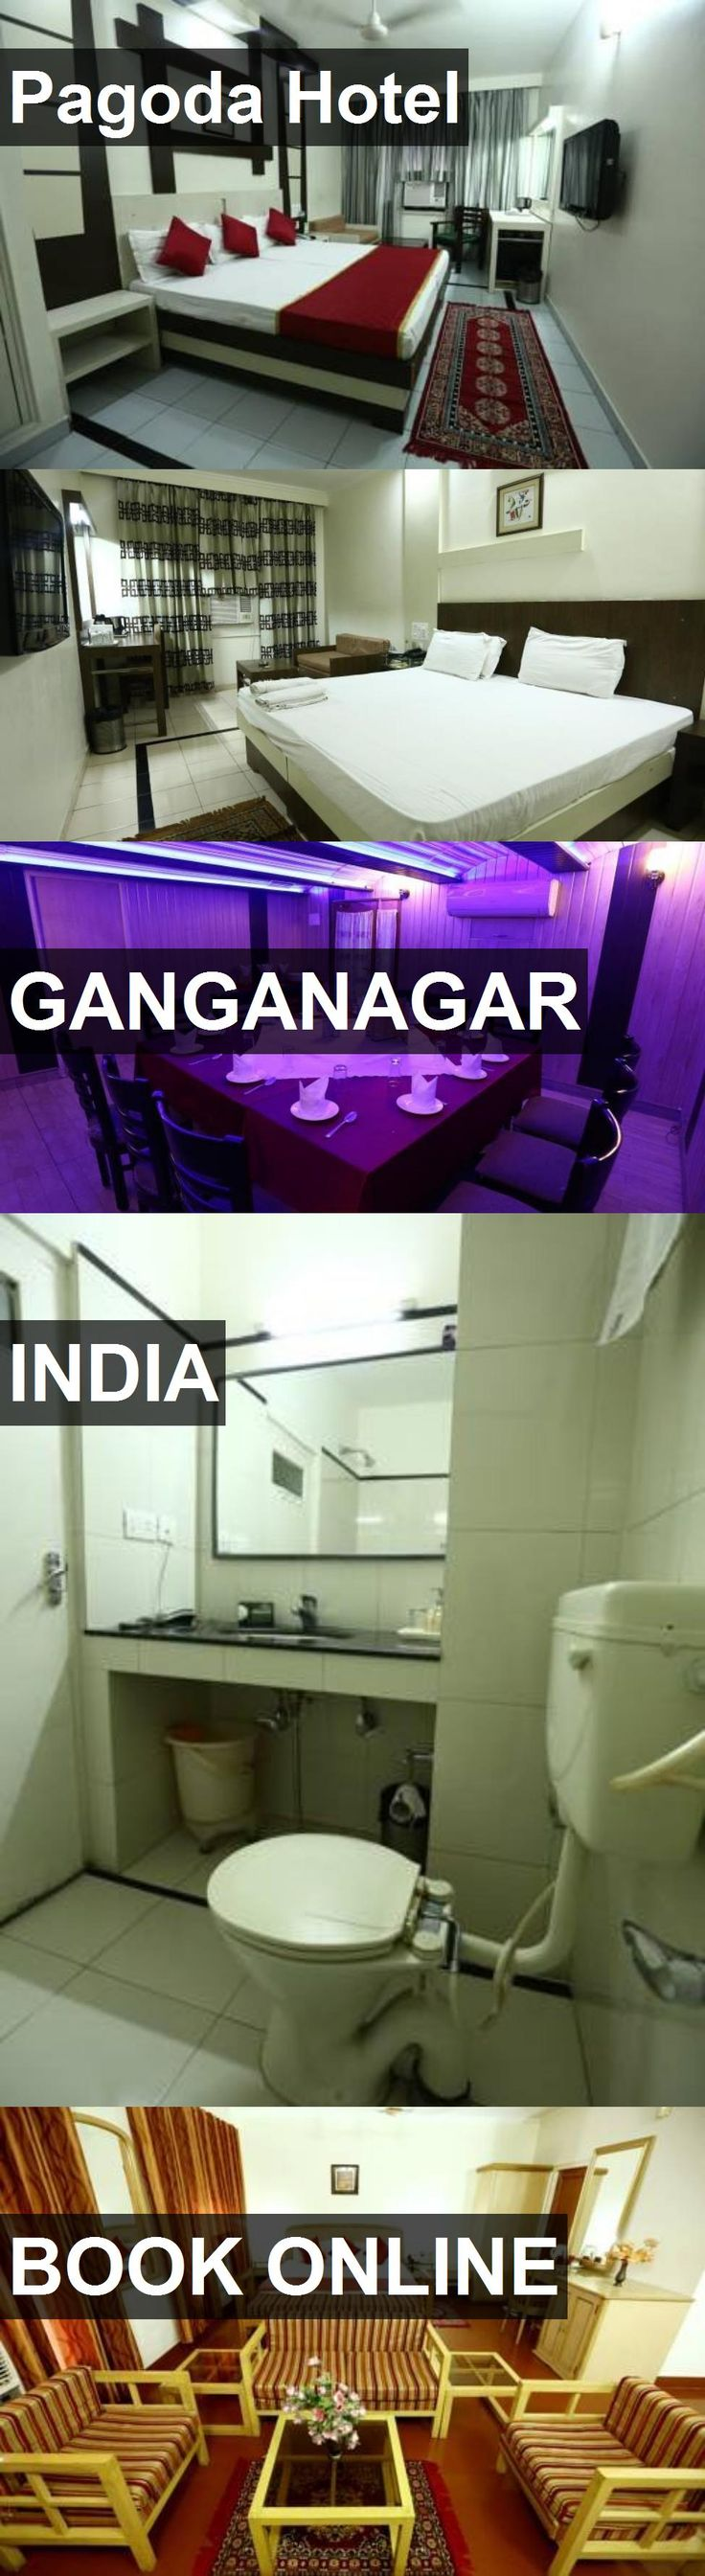 Hotel Pagoda Hotel in Ganganagar, India. For more information, photos, reviews and best prices please follow the link. #India #Ganganagar #PagodaHotel #hotel #travel #vacation